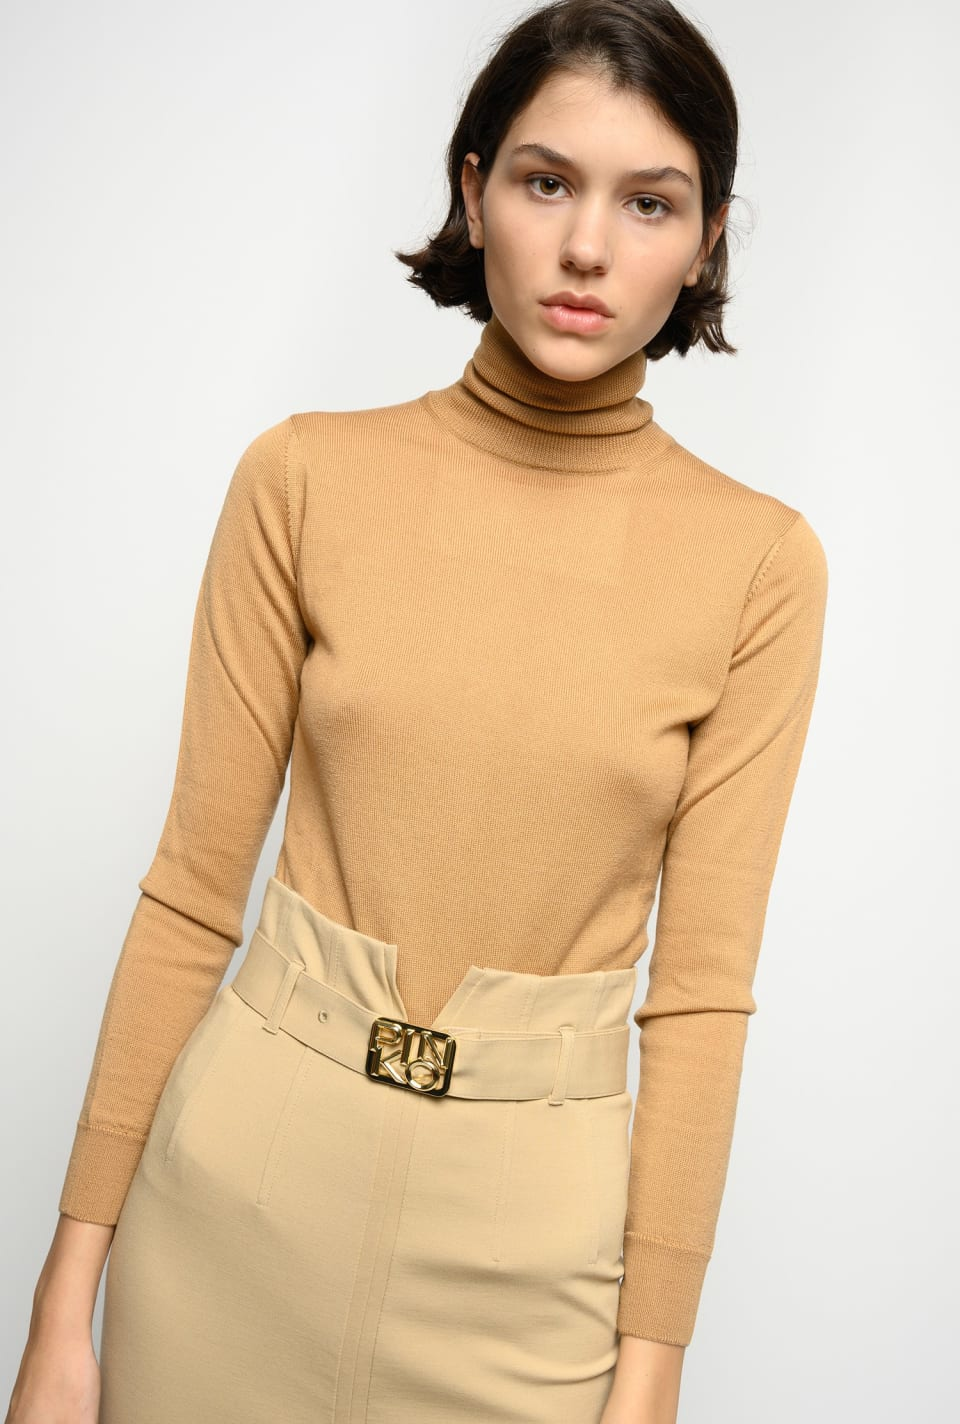 Wool turtleneck - Pinko